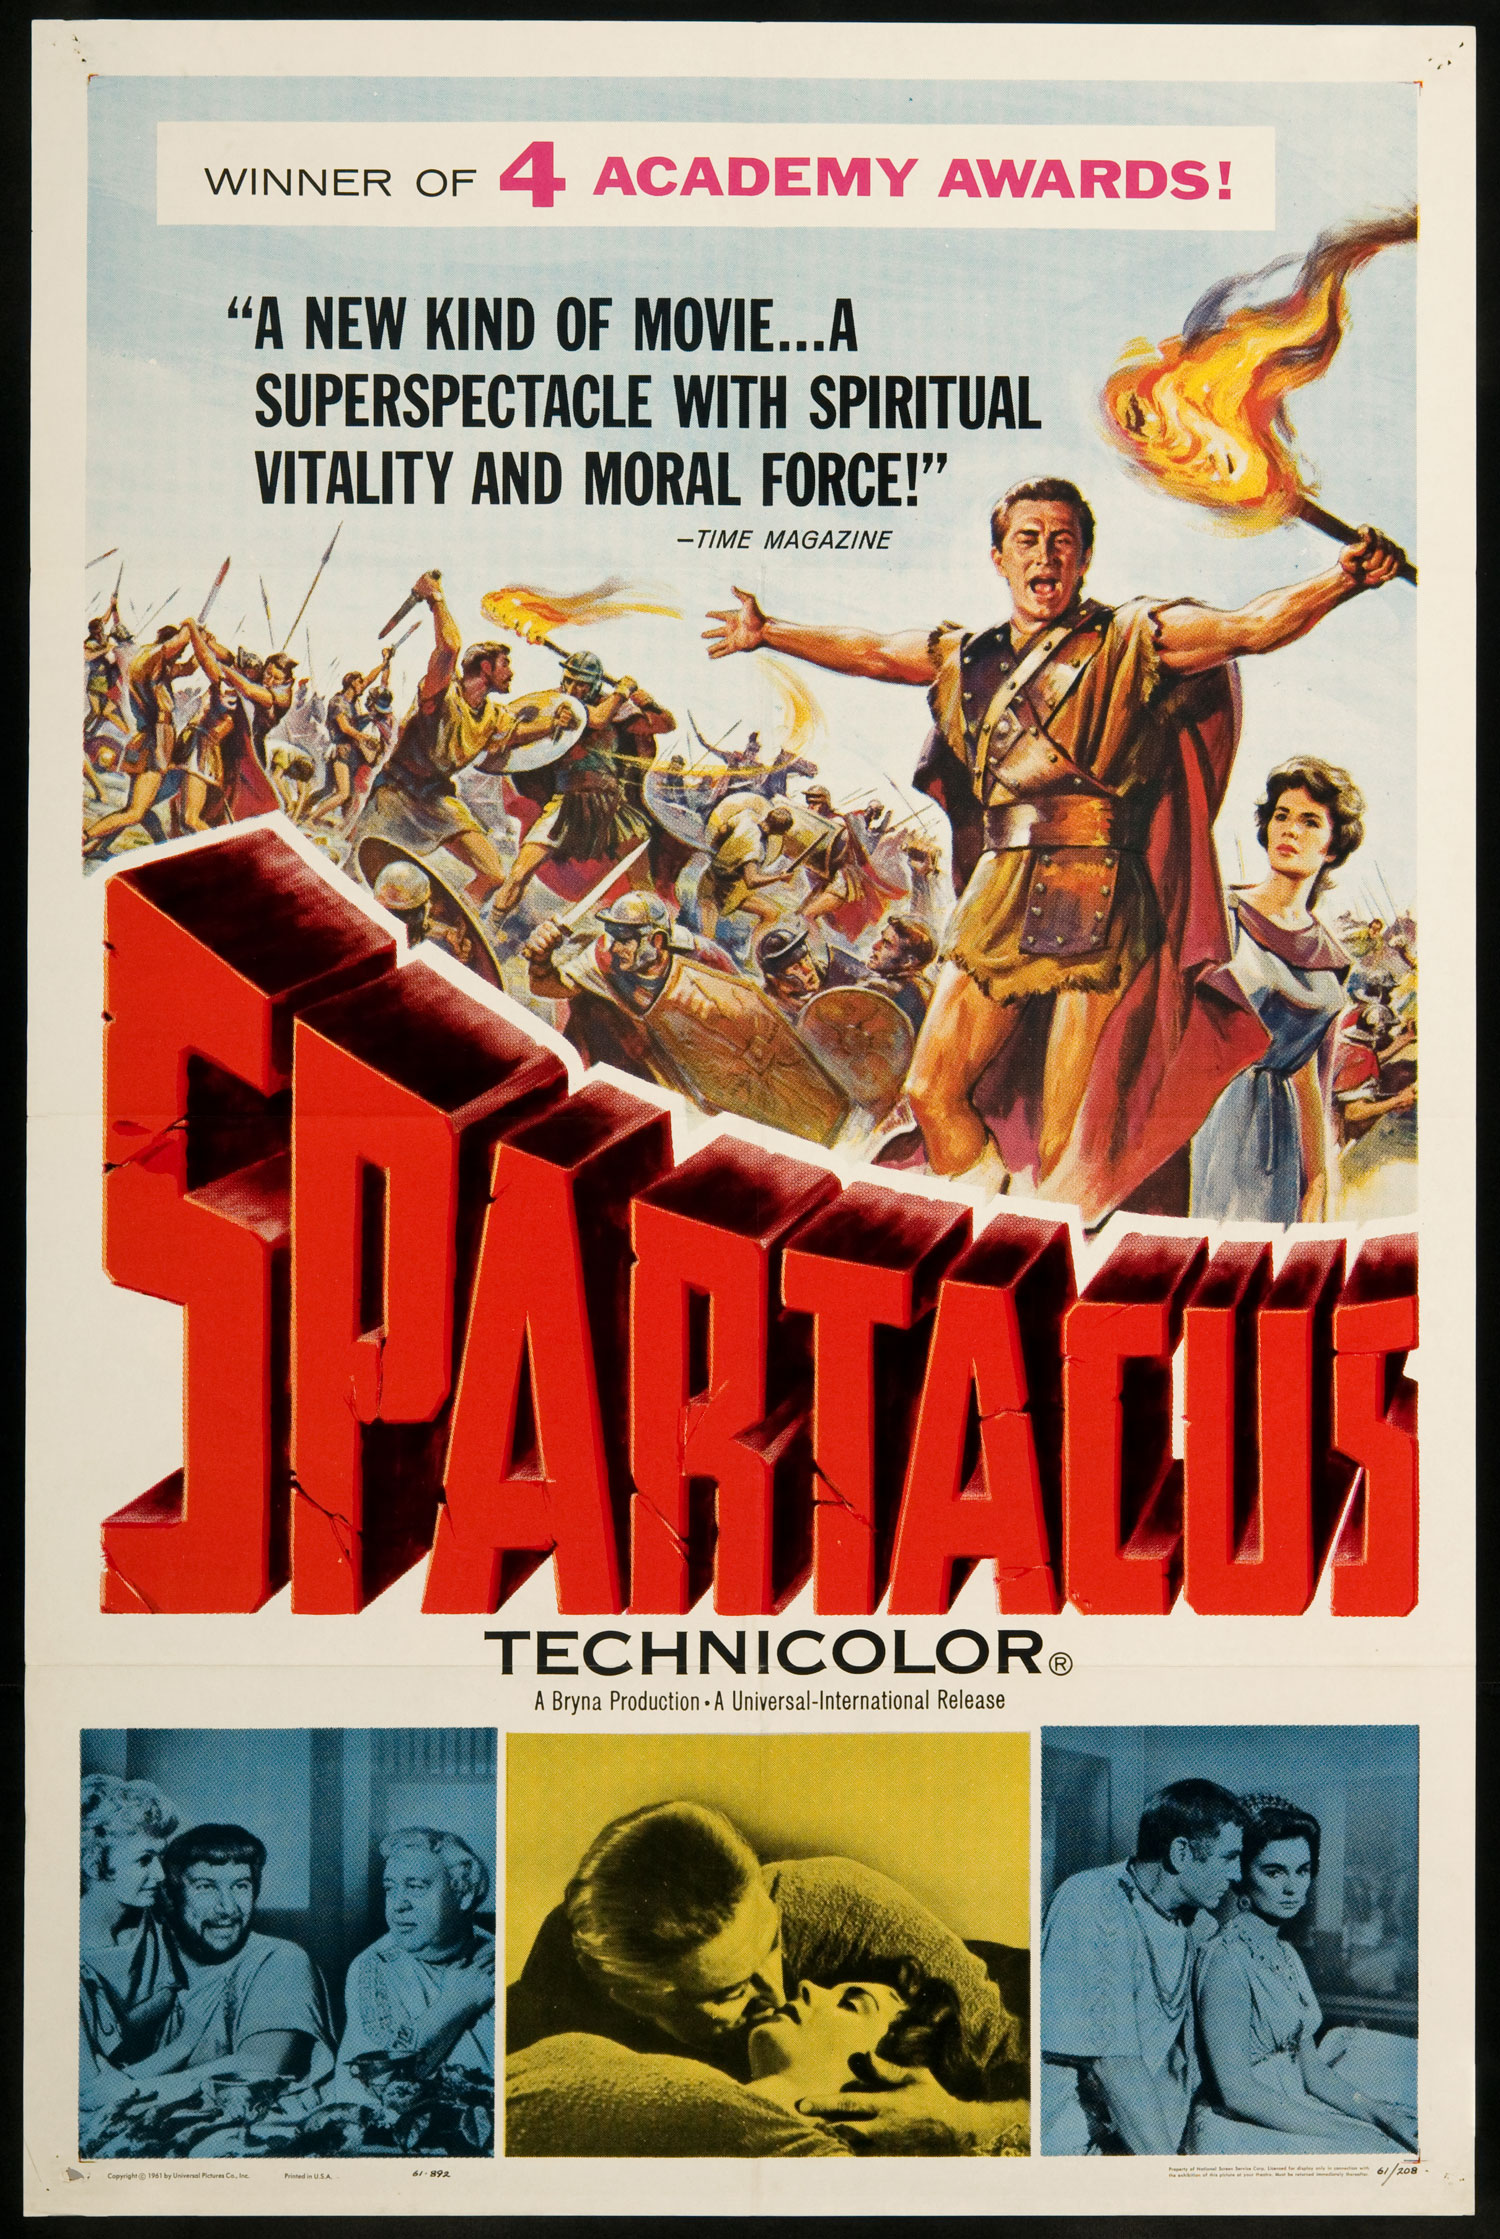 Spartacus (1960) - Directed by: Stanley KubrickStarring: Kirk Douglas, Jean Simmons, Laurence Olivier, Charles Laughton, Peter UstinovRated: PG13Running Time: 3hrs 17minTMM Score: 5 StarsSTRENGTHS: Epic Scale, ThemesWEAKNESSES: None